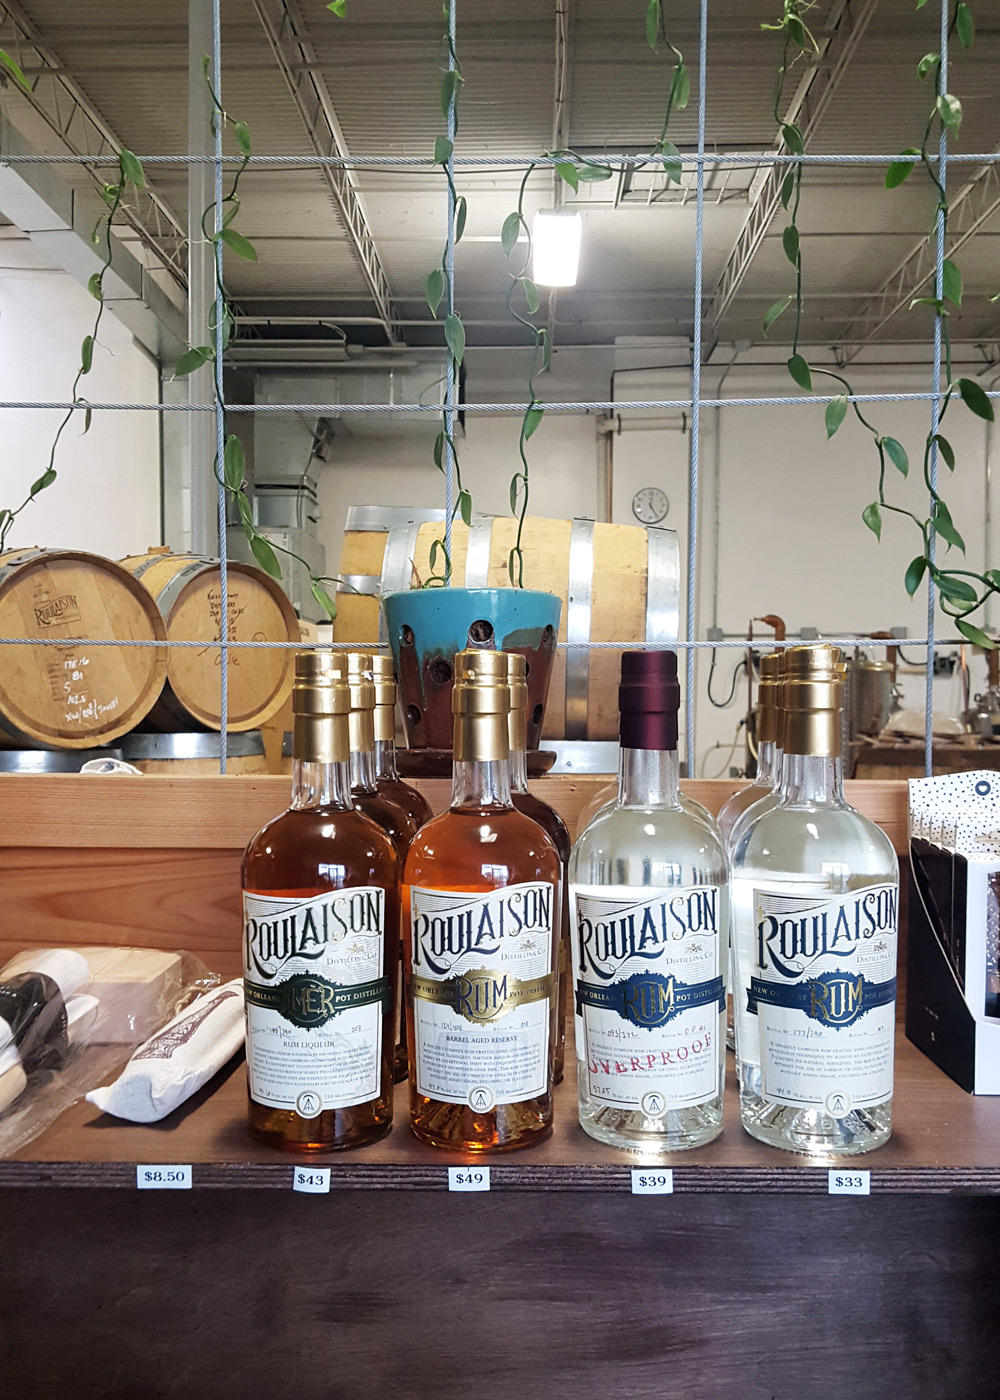 With a two-man team using local Louisiana molasses, Roulaison Distilling Co. is creating big flavor in small batches of craft rum.  | FeastInThyme.com